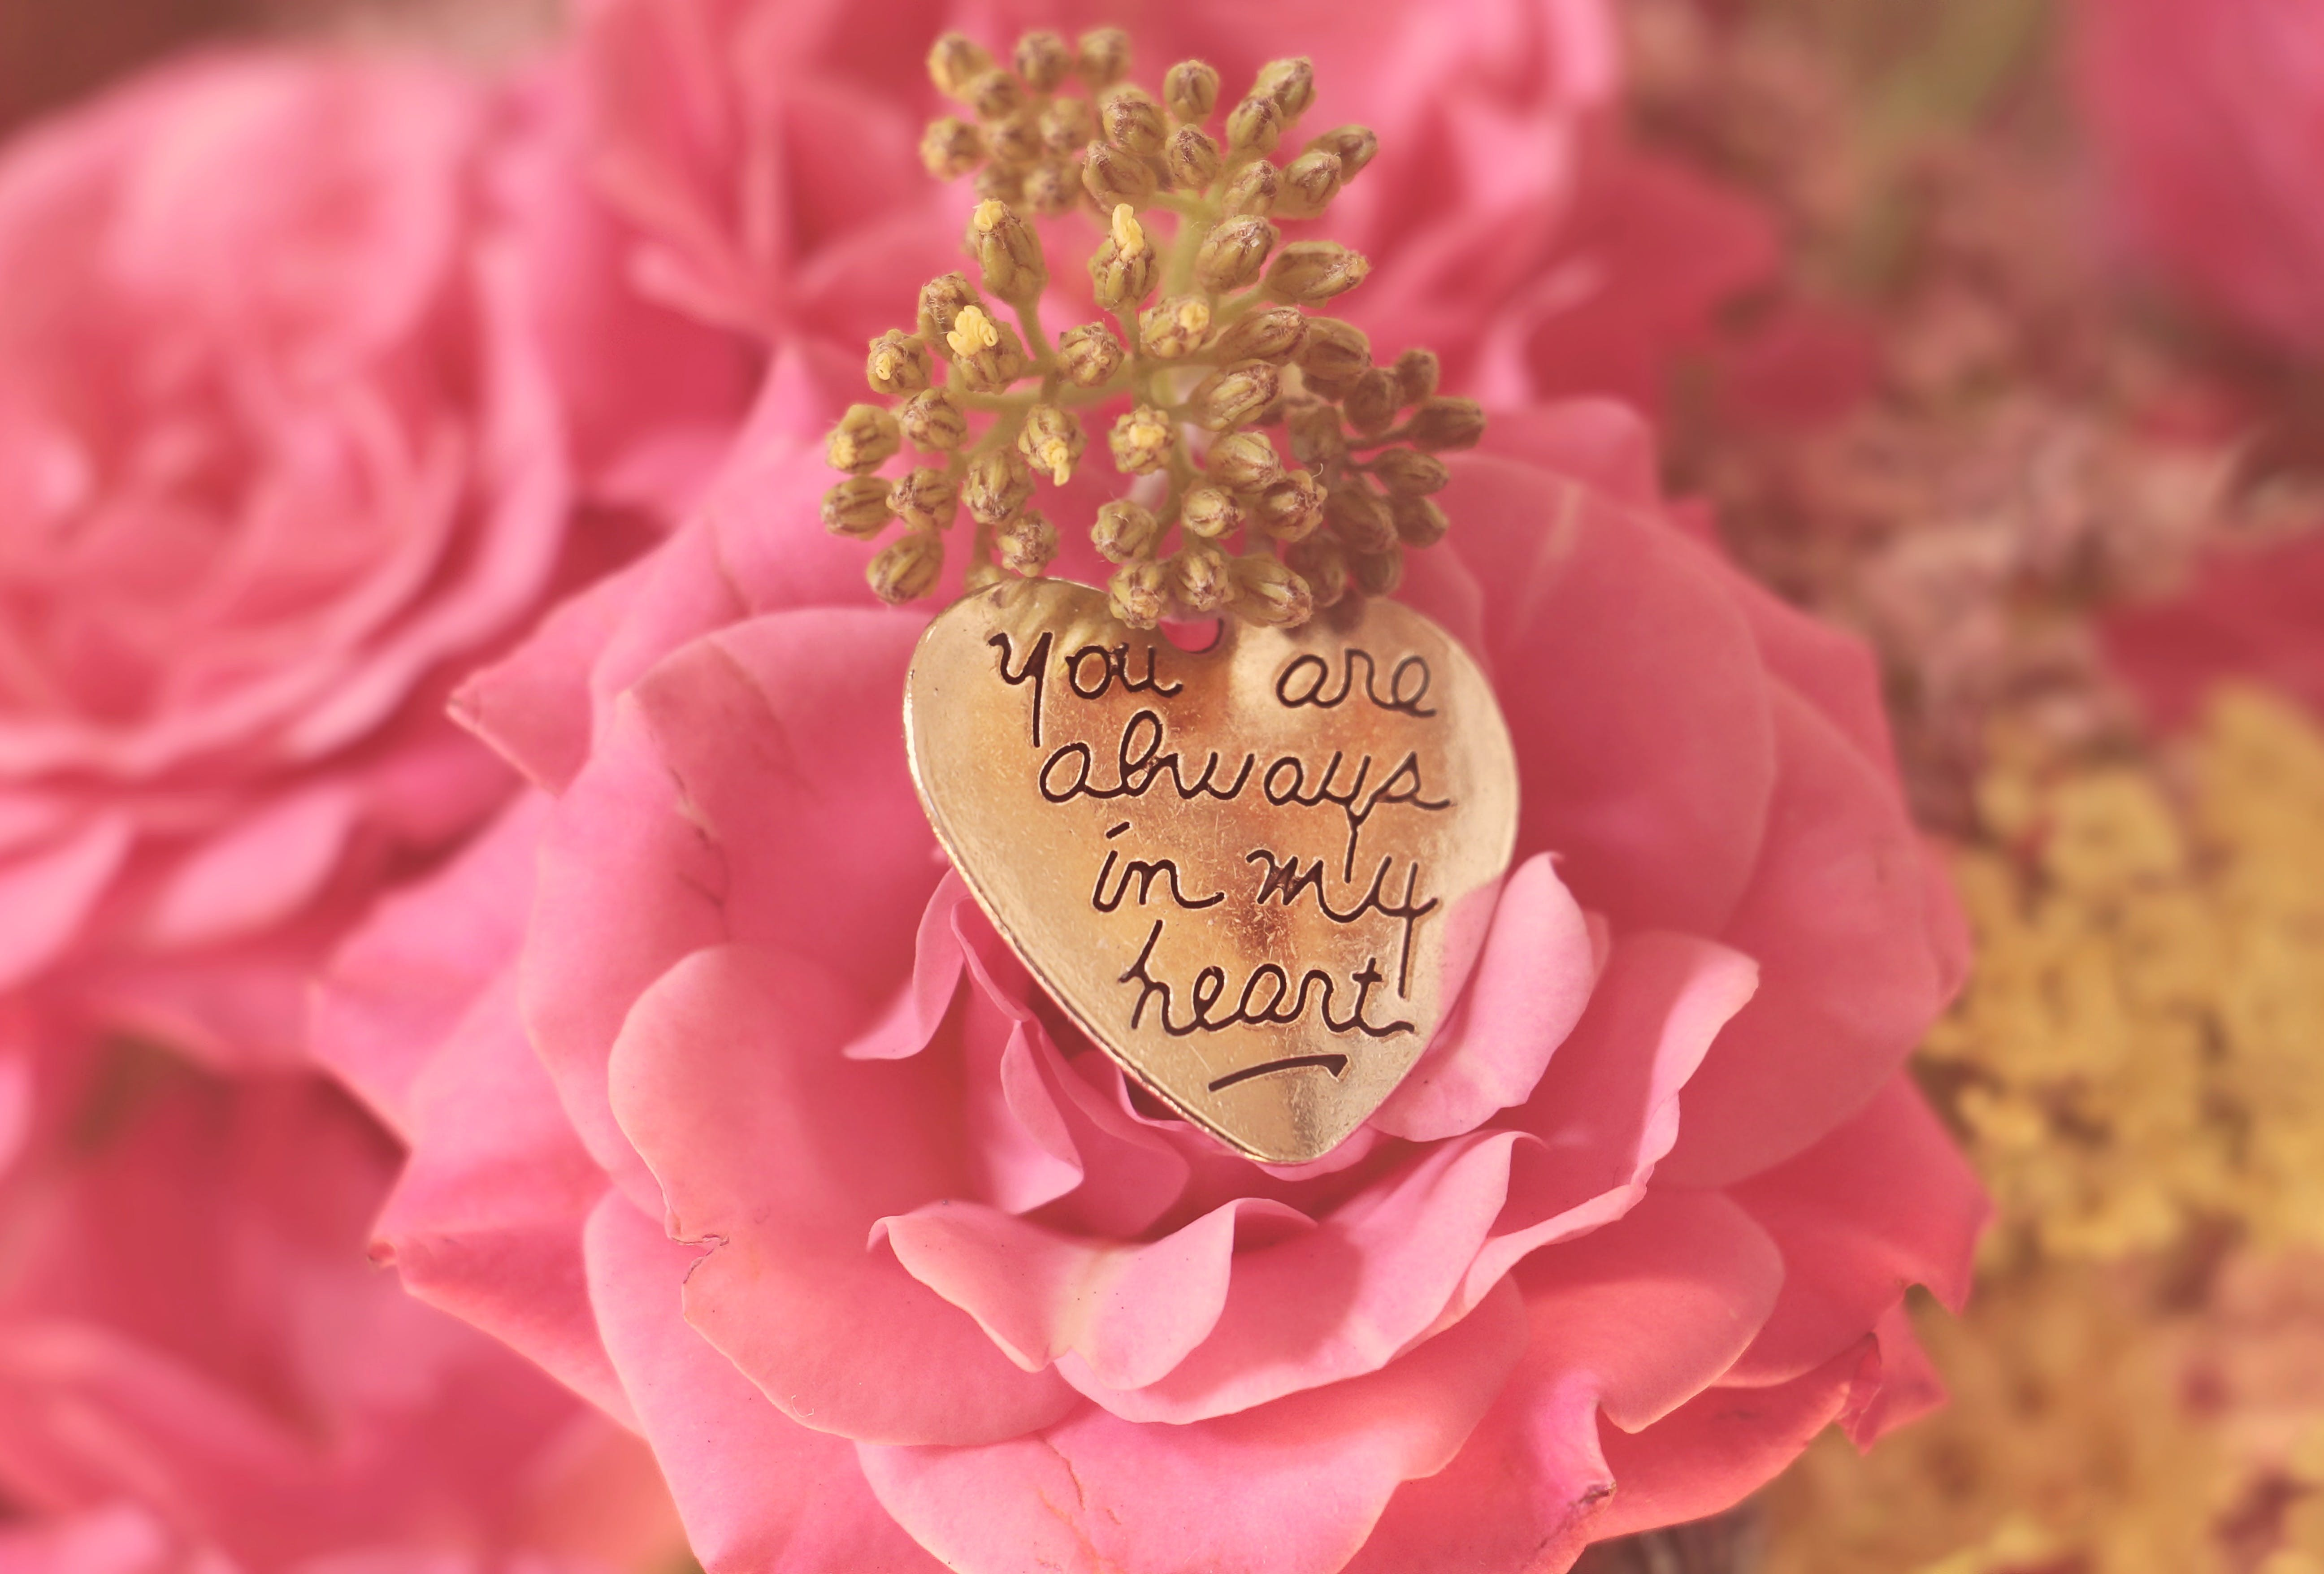 Free stock photo of heart, flowers, petals, bouquet